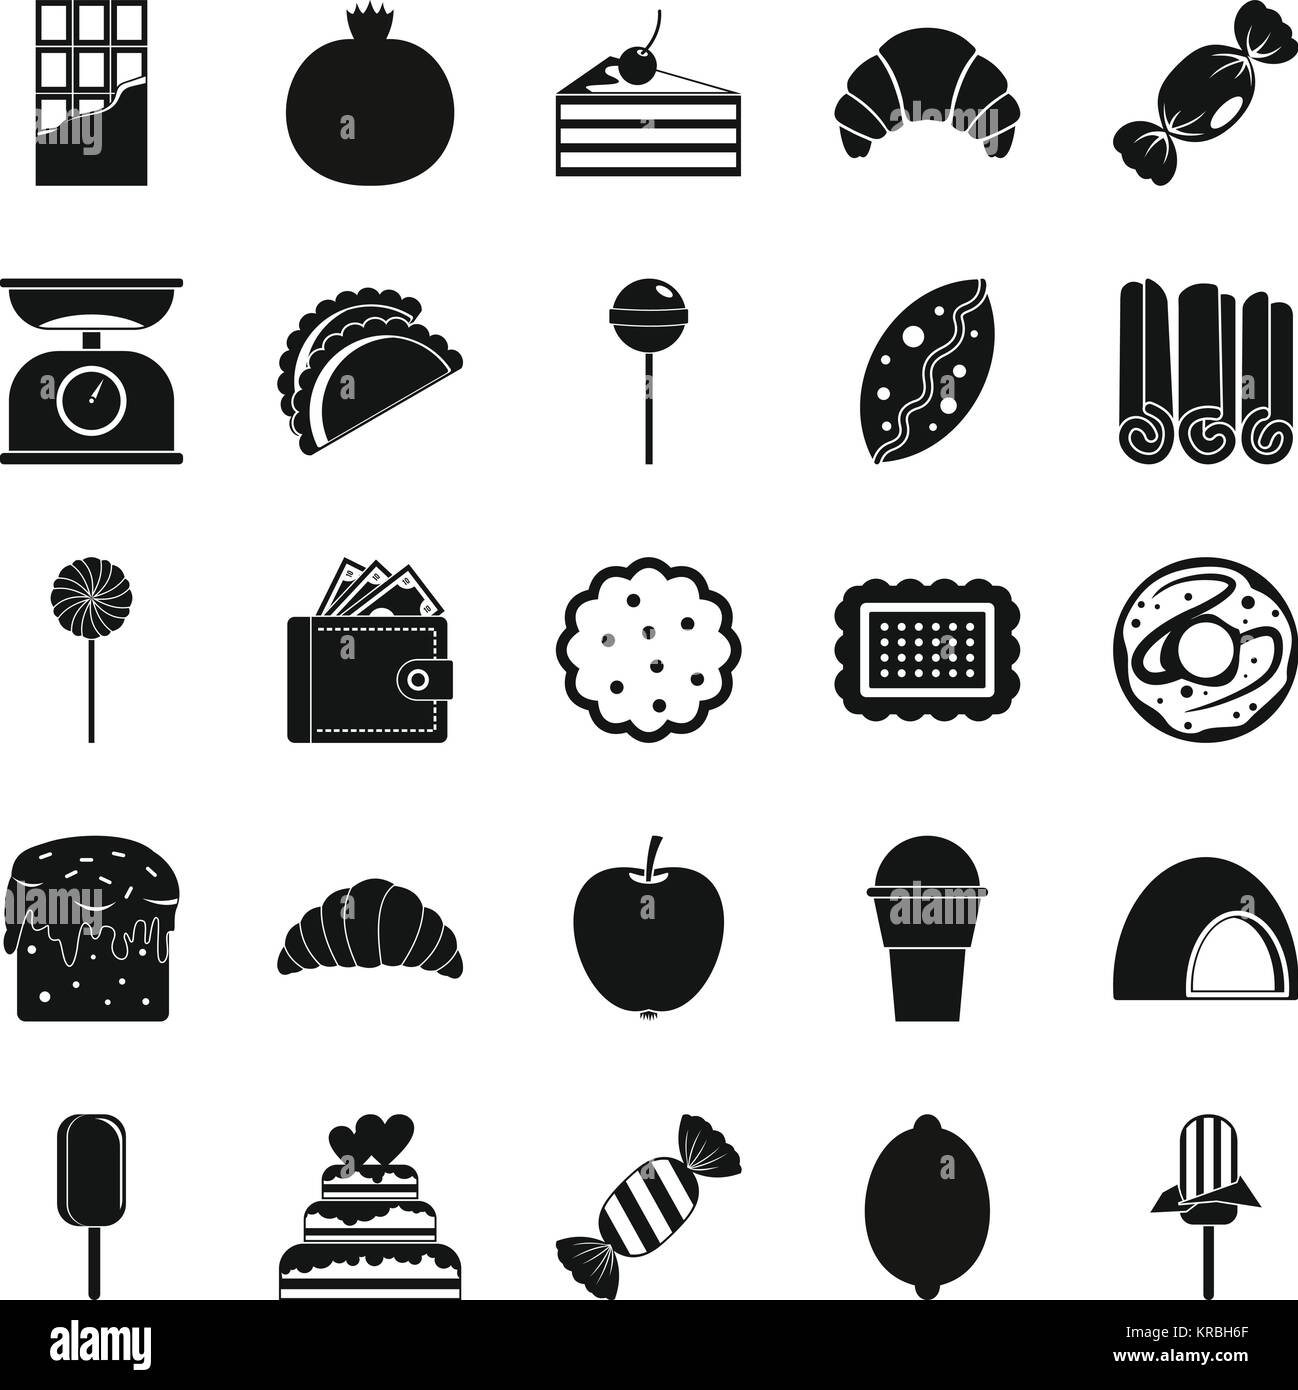 Ice cream parlor icons set, simple style Stock Vector